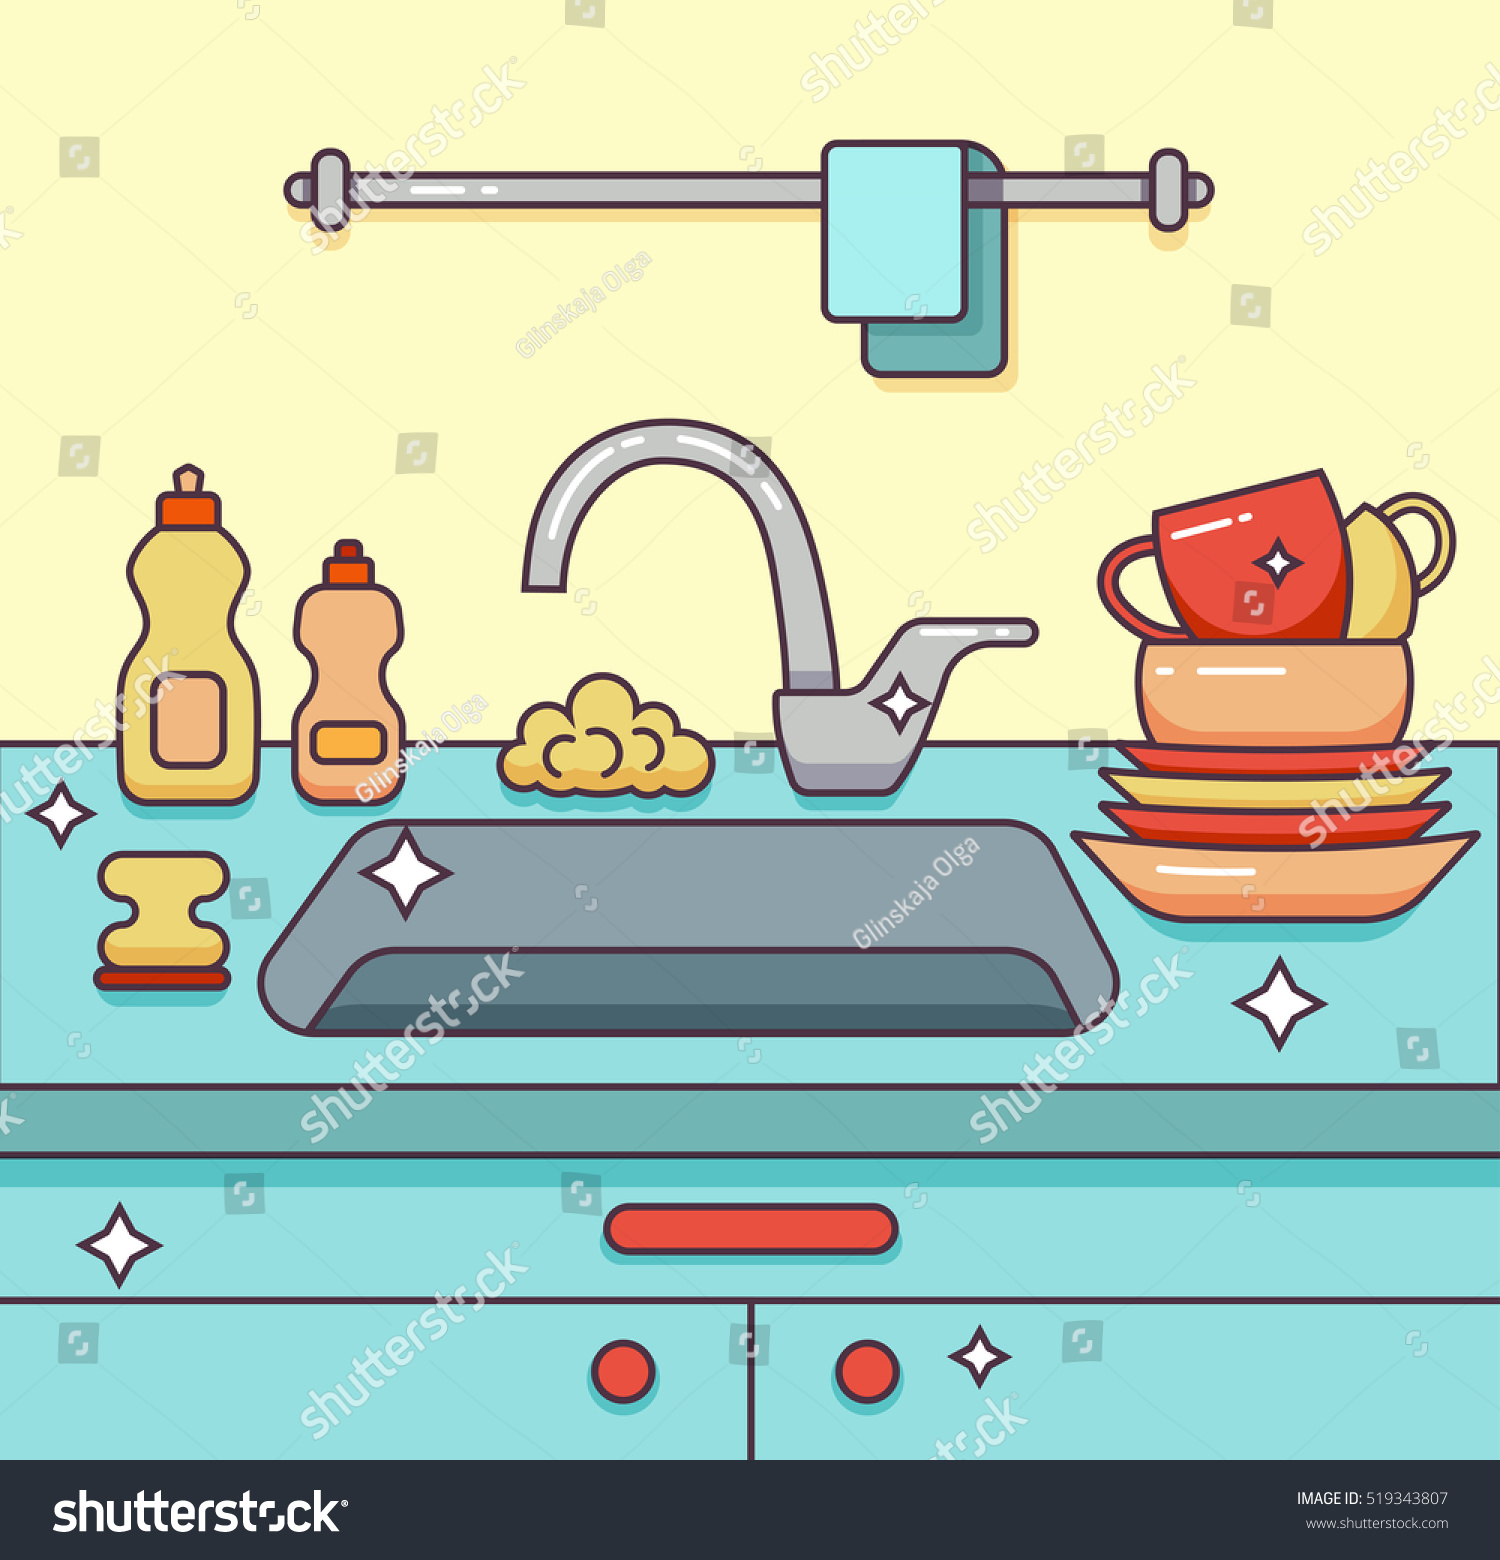 Kitchen Wall Faucet Kitchen Sink Kitchenware Dishes Utensil Towel Stock Vector